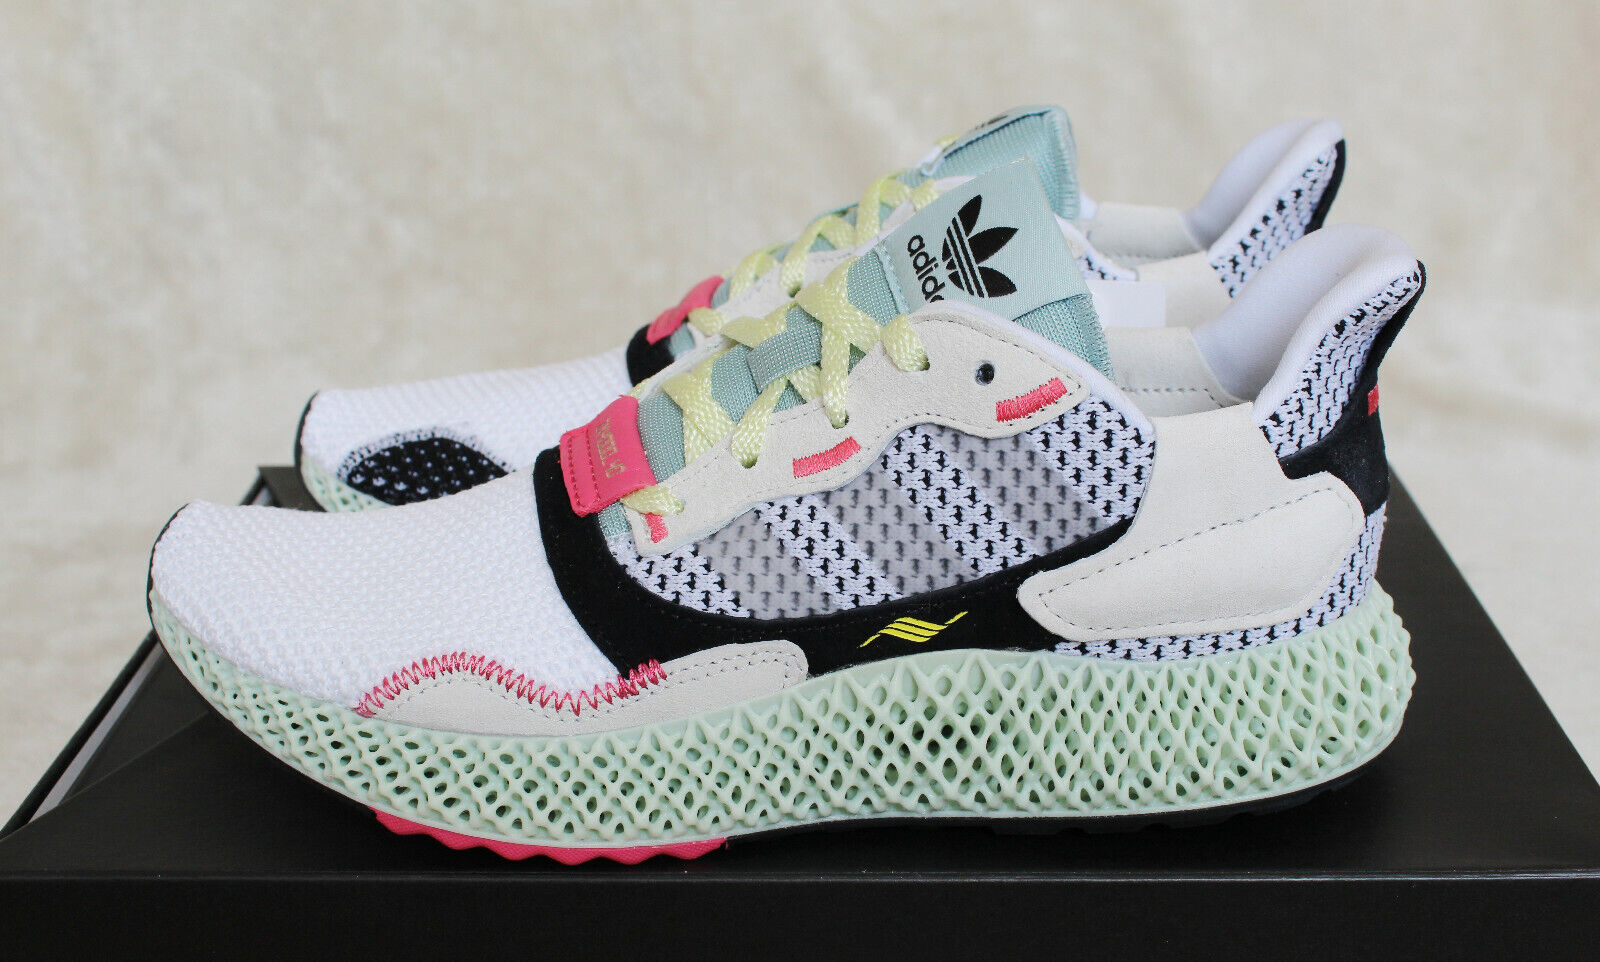 8bbbd459a8547 New Adidas ZX4000 4D Futurecraft Printed Sole White Green 4 W 5 US US  naofxl5176-Athletic Shoes